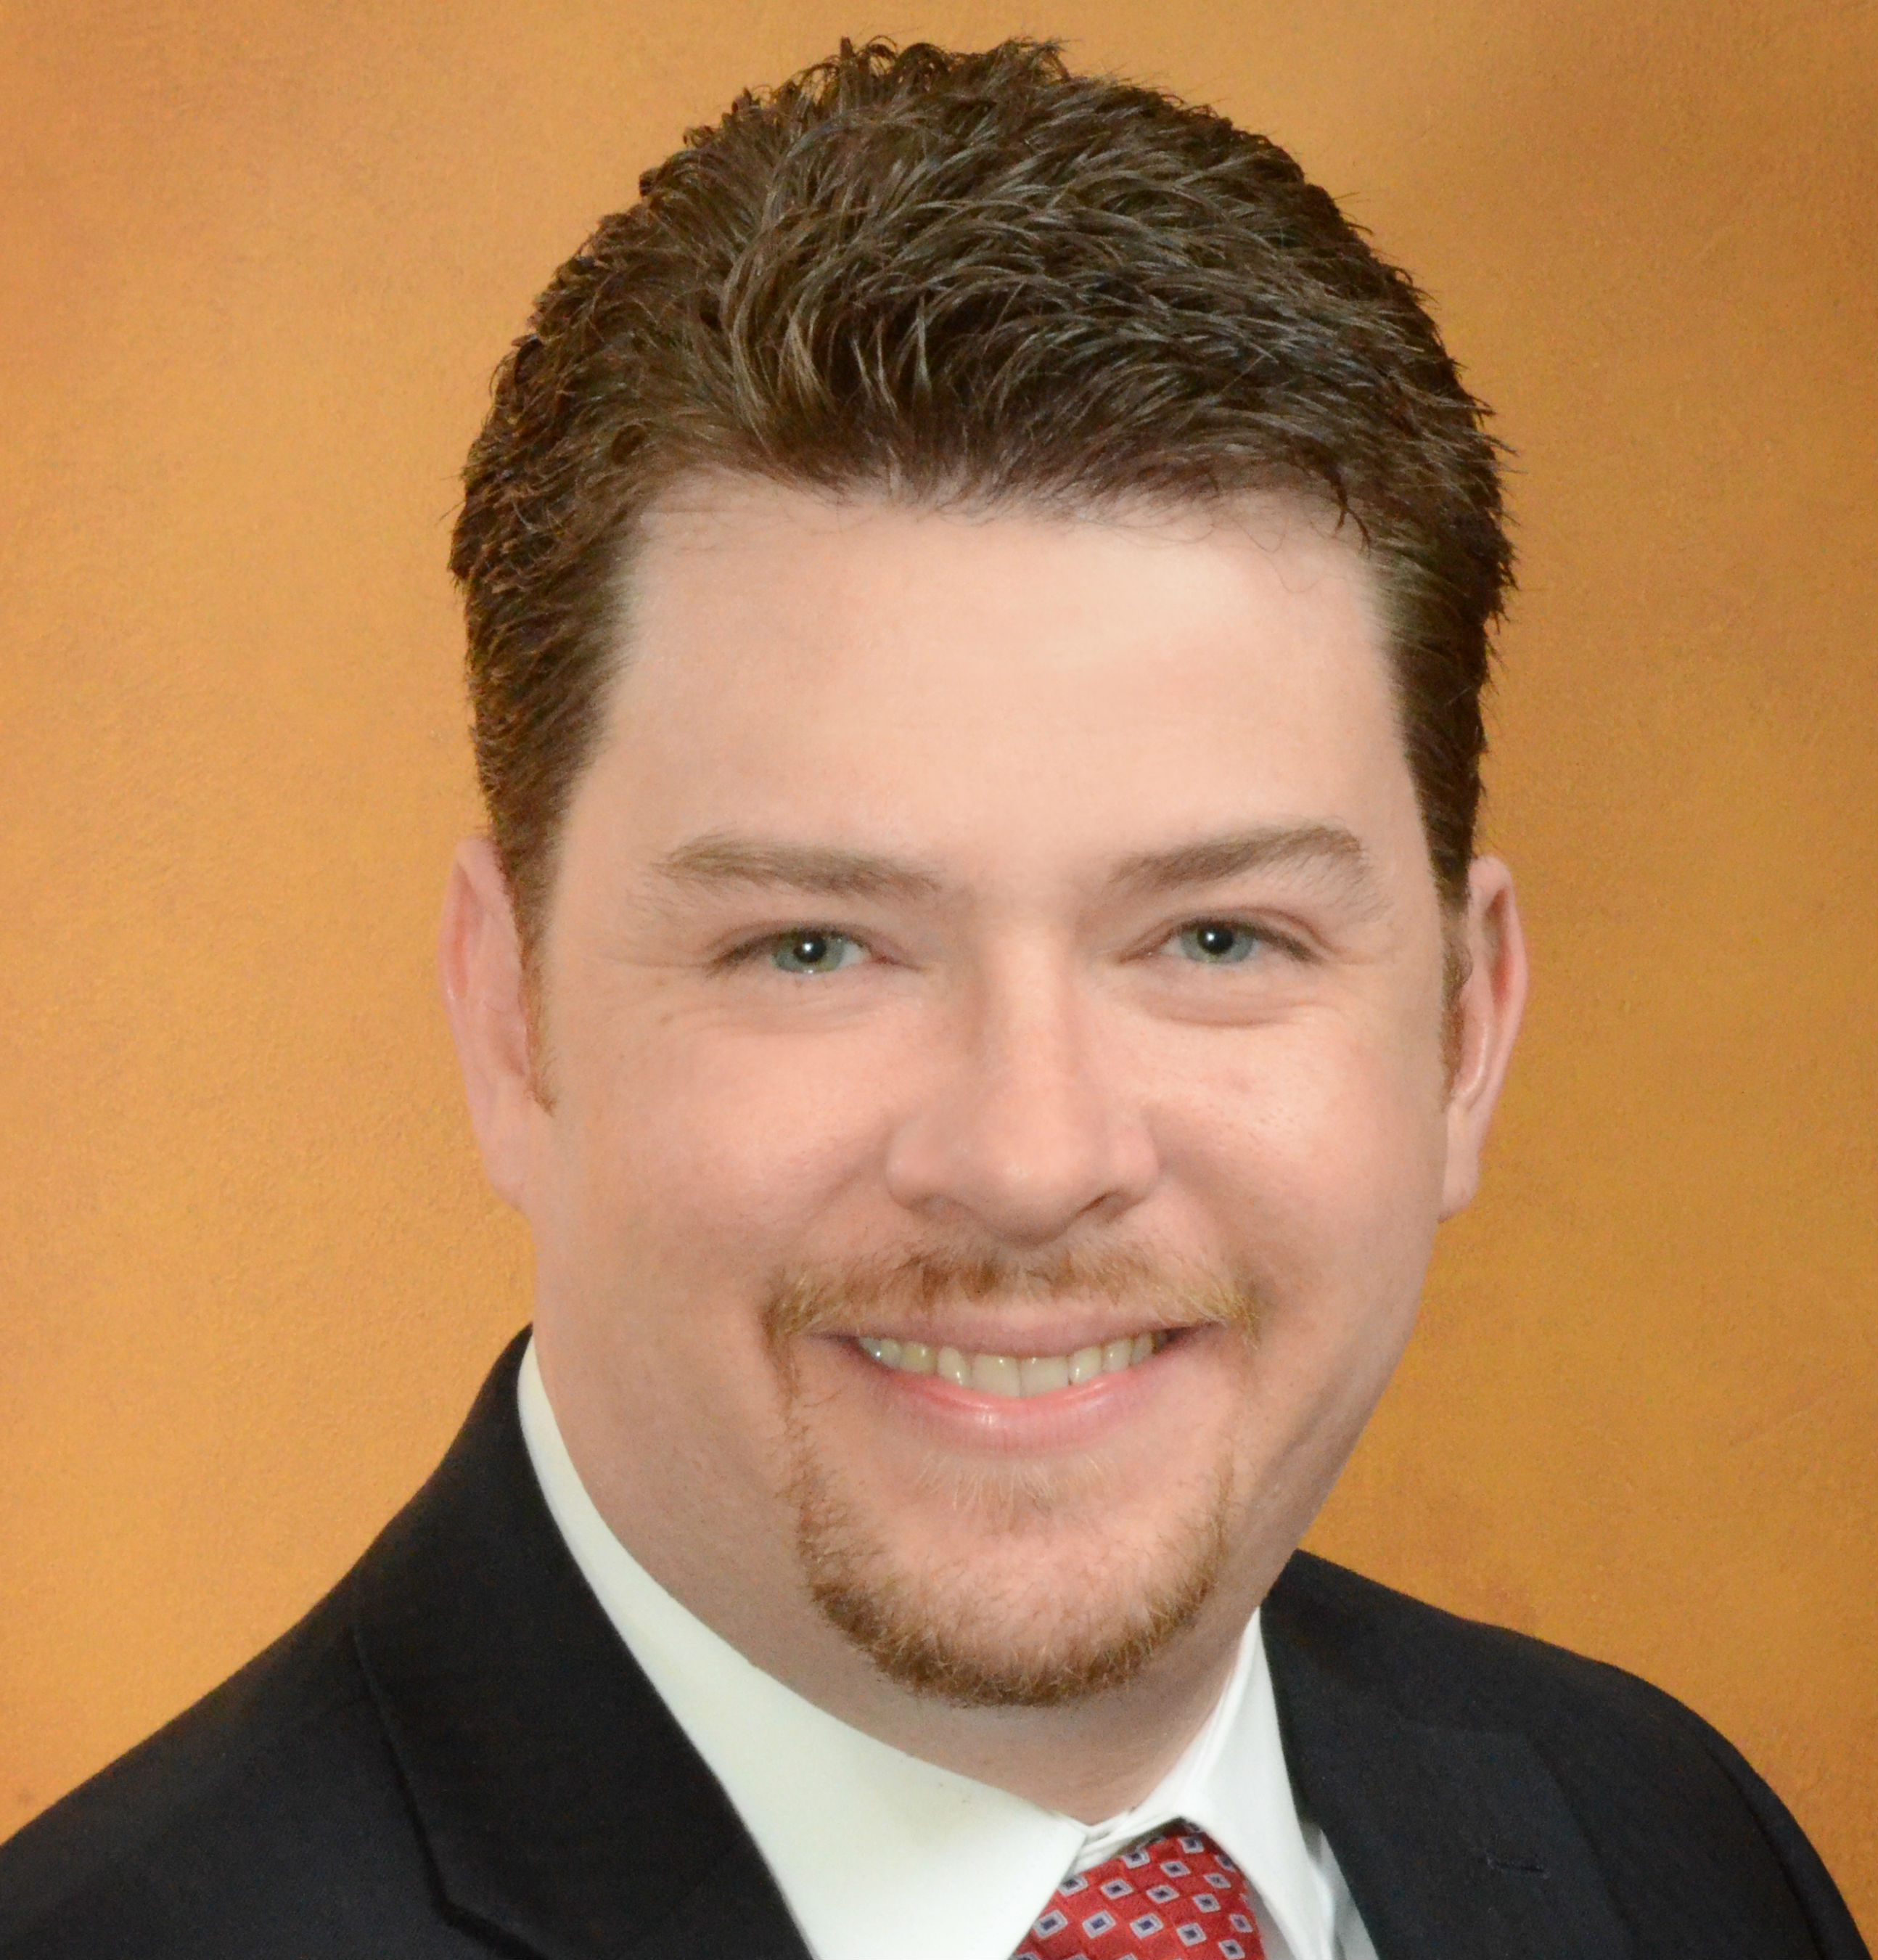 Chris Rondinelli, financial advisor Freeport PA